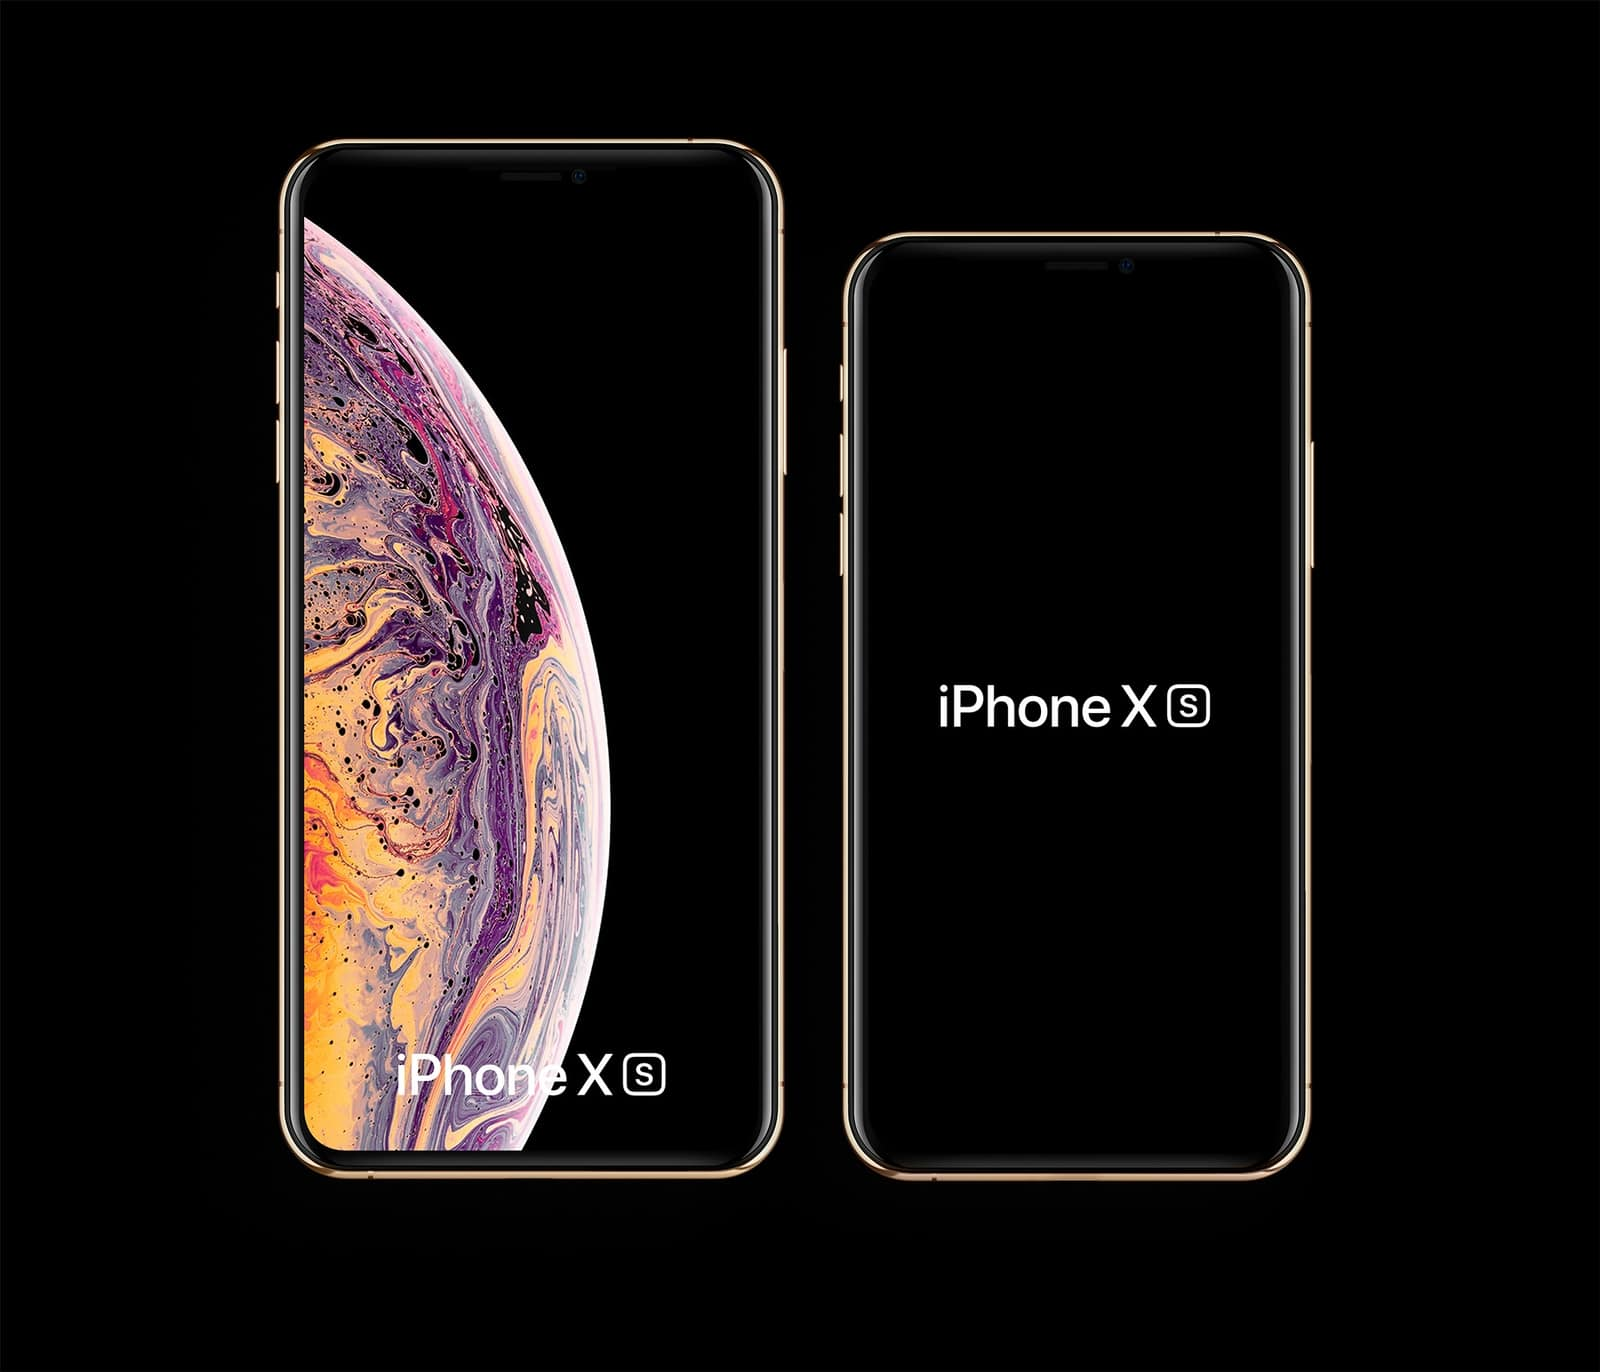 Free iPhone XS, iPhone XS Max Mockups | LS Graphics